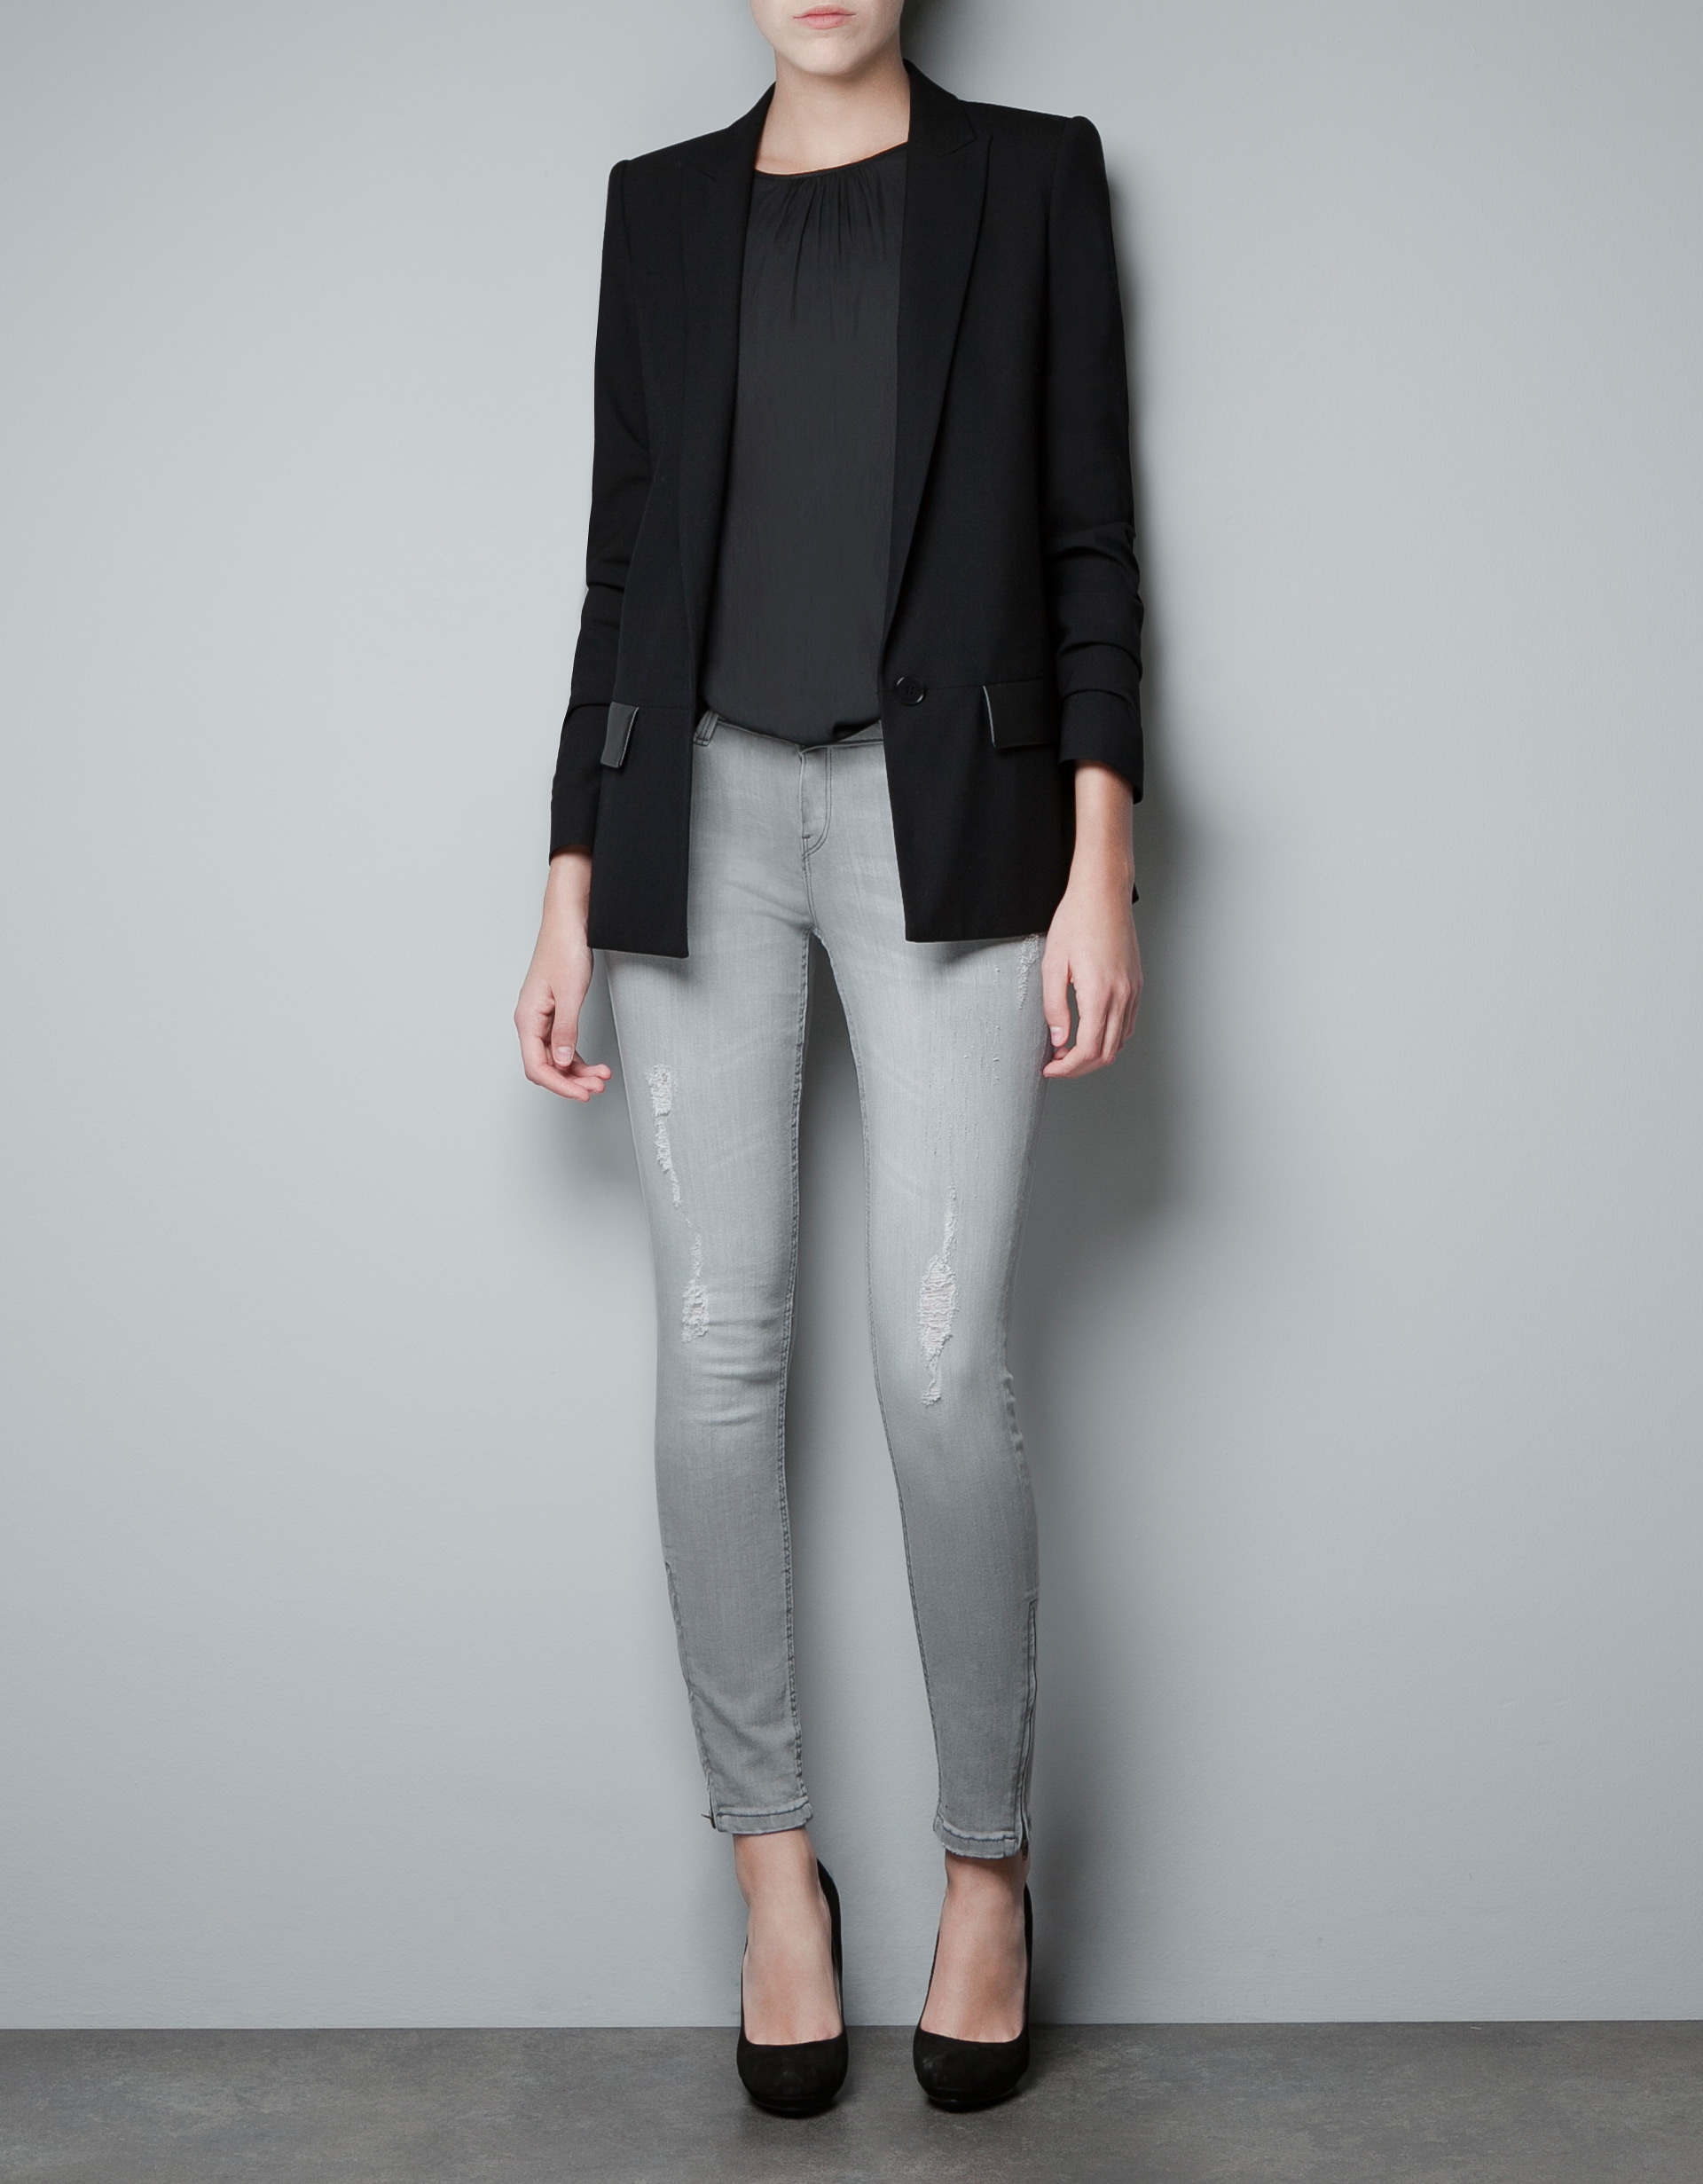 zara-black-blazer-with-faux-leather-pocket-flaps_thecolorharmony